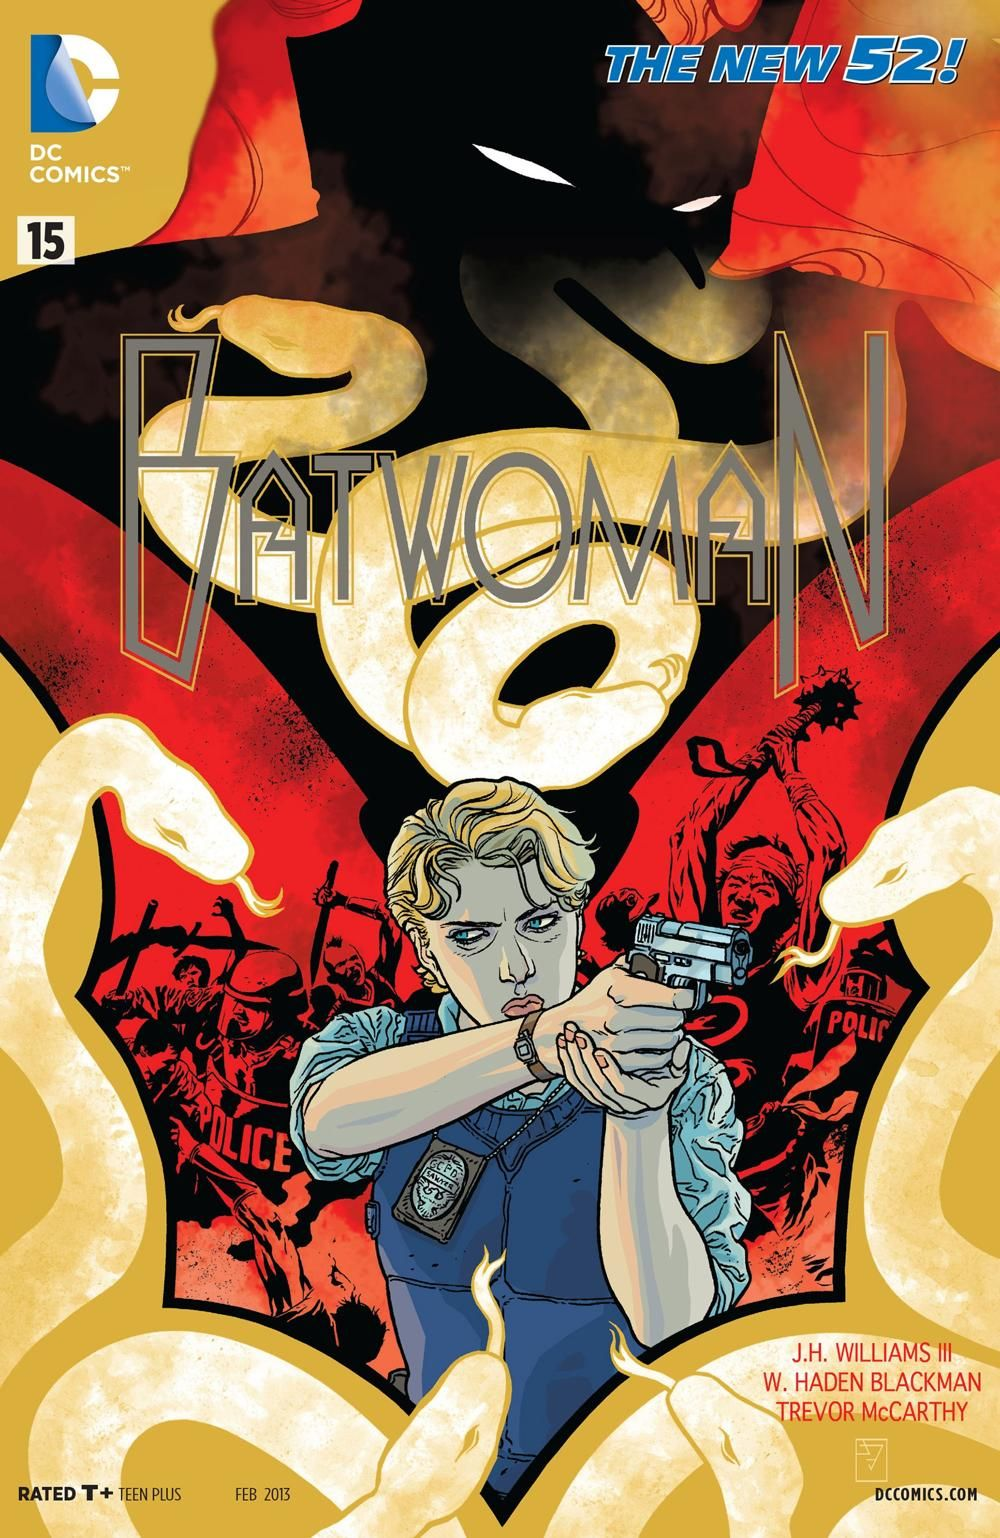 Batwoman (Volume 1) Issue 15 by J.H. Williams III